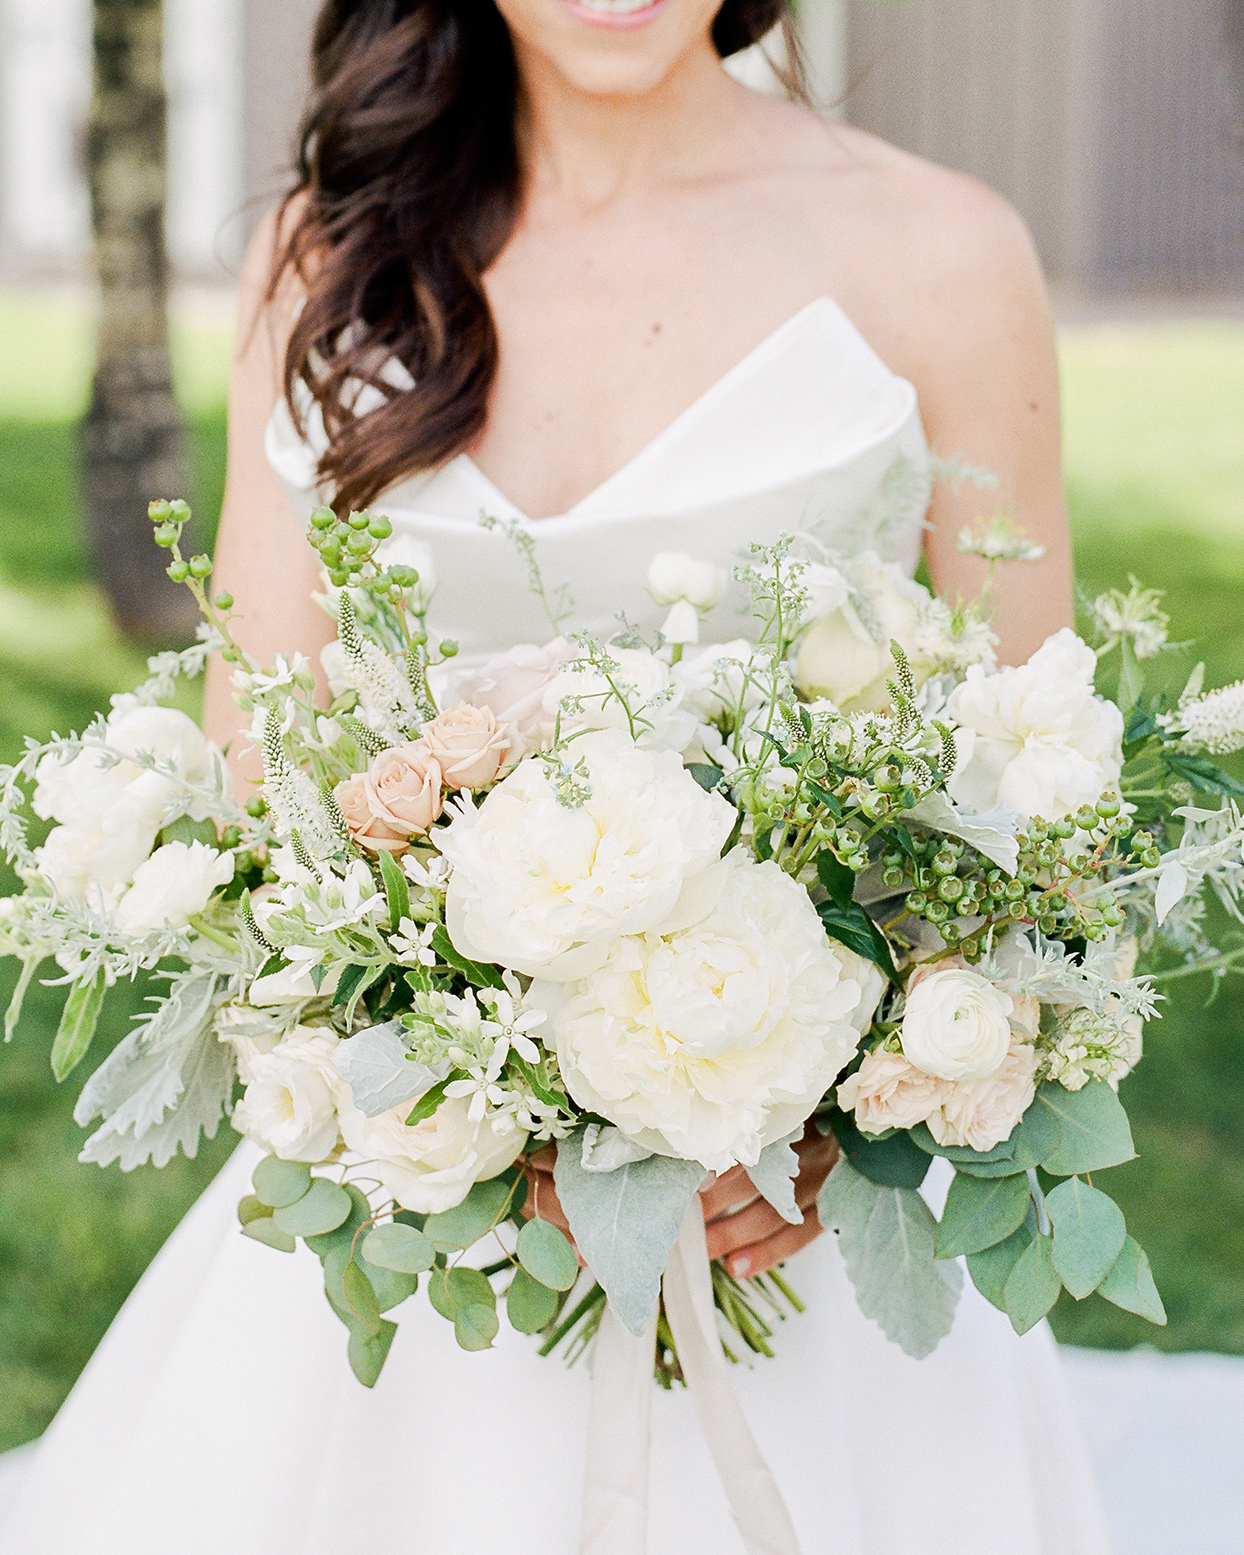 jessica aaron bride holding white wedding bouquet